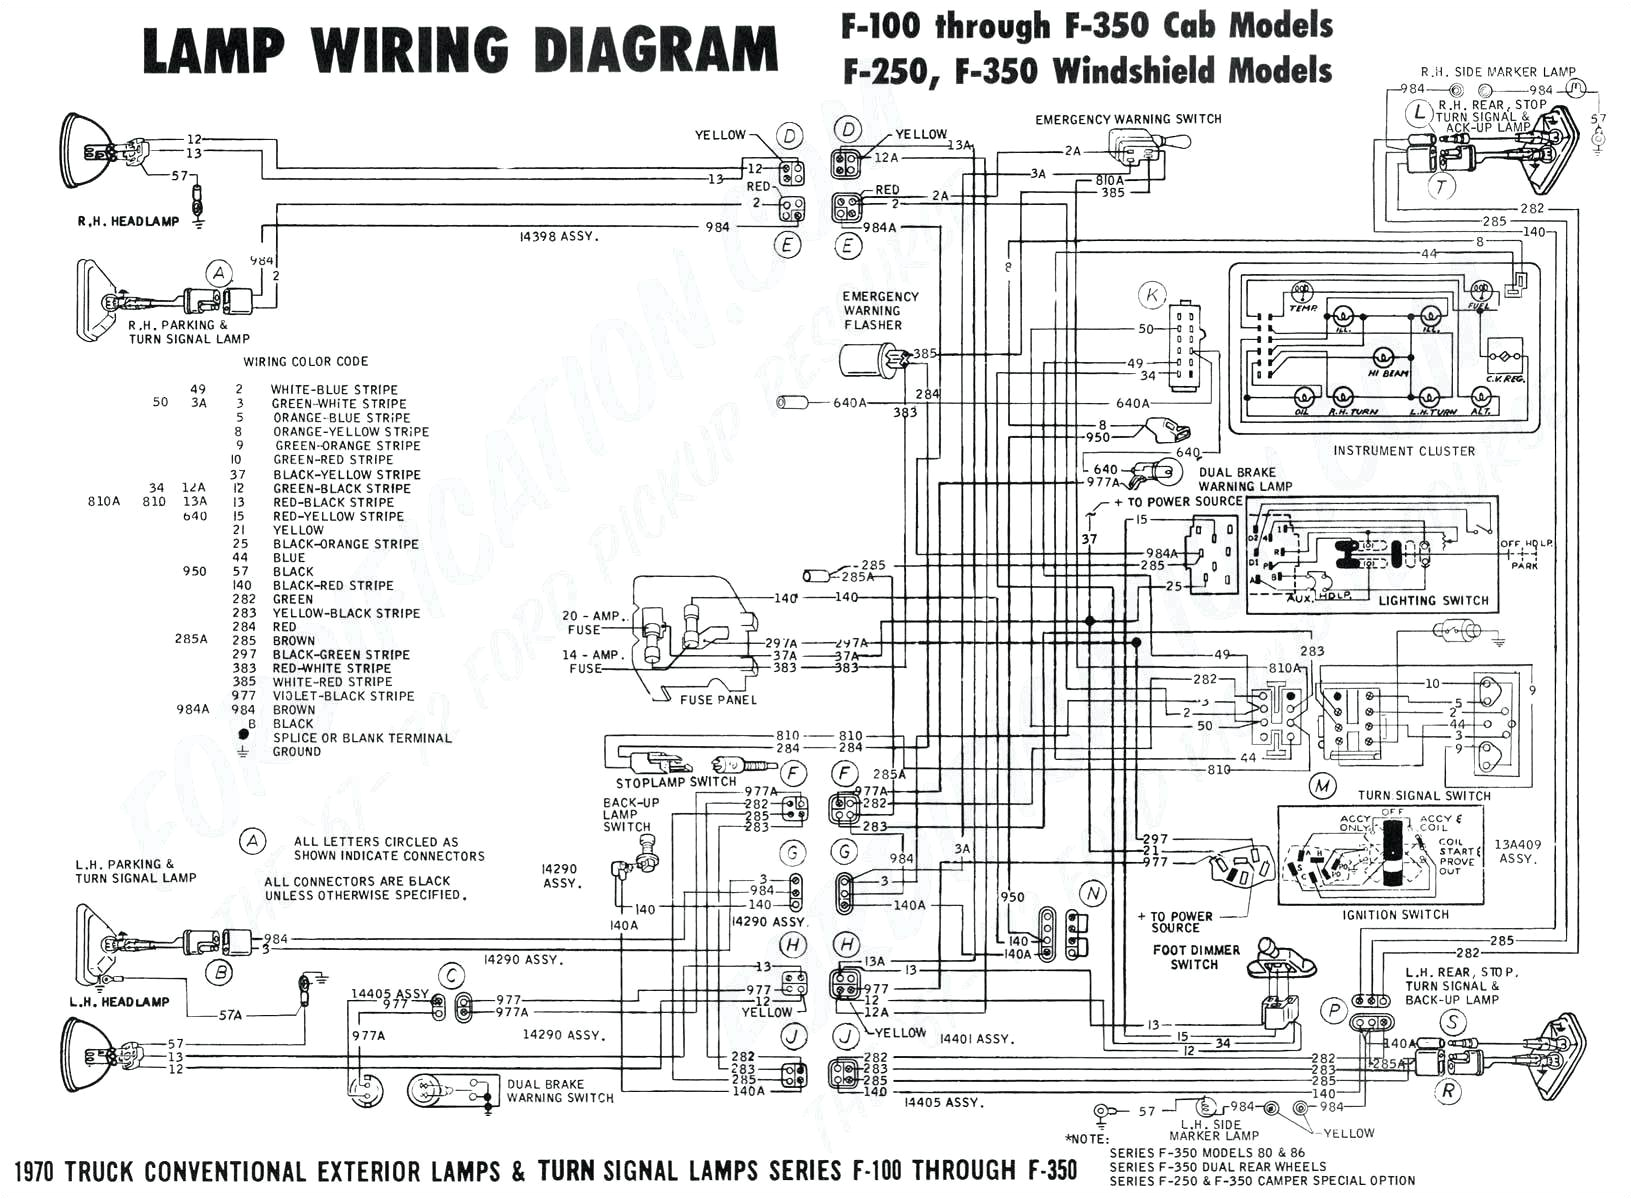 Ymgi Wiring Diagram on pinout diagrams, hvac diagrams, transformer diagrams, lighting diagrams, honda motorcycle repair diagrams, led circuit diagrams, engine diagrams, friendship bracelet diagrams, electrical diagrams, gmc fuse box diagrams, troubleshooting diagrams, internet of things diagrams, motor diagrams, battery diagrams, smart car diagrams, sincgars radio configurations diagrams, switch diagrams, series and parallel circuits diagrams, electronic circuit diagrams,